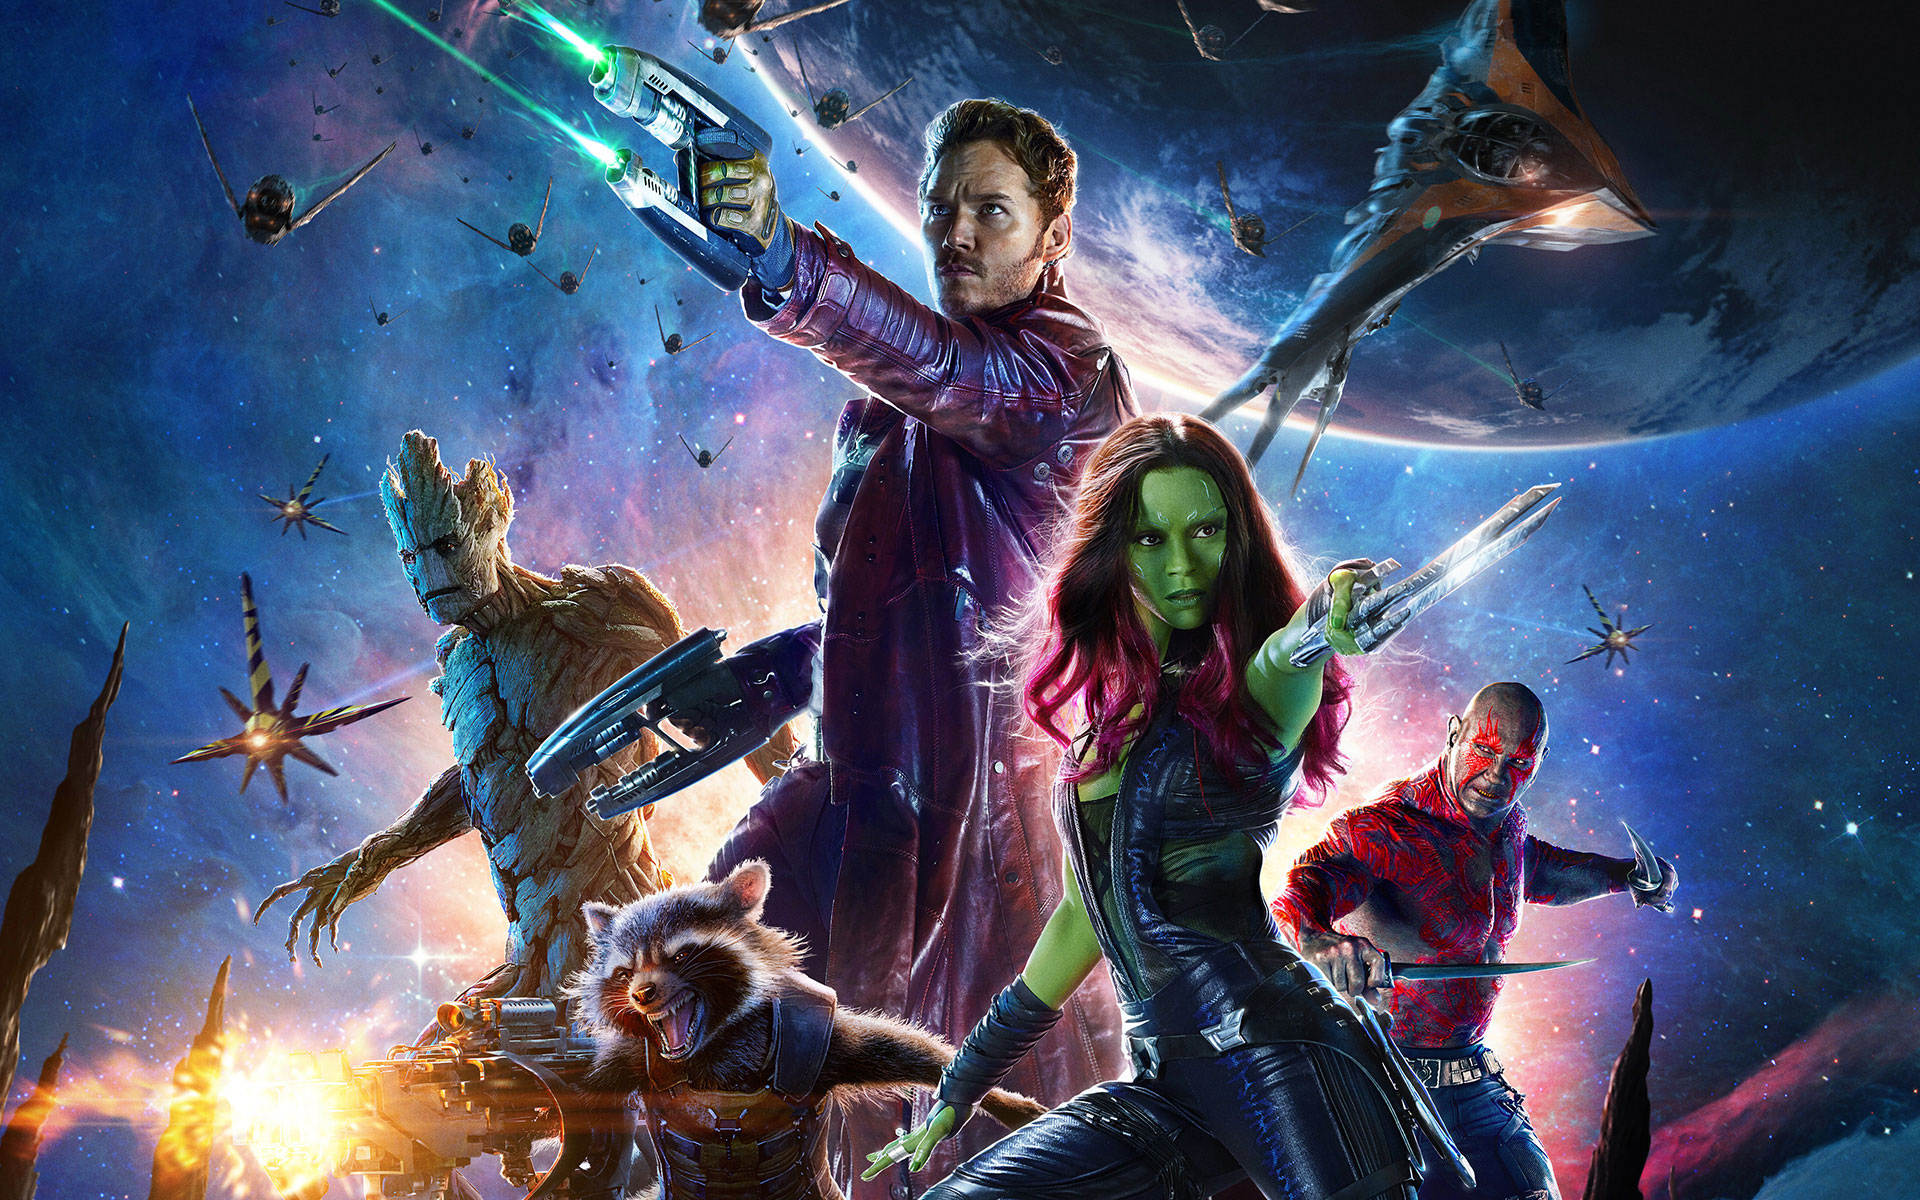 Guardians of the Galaxy Team wallpaper HD 1920×1200